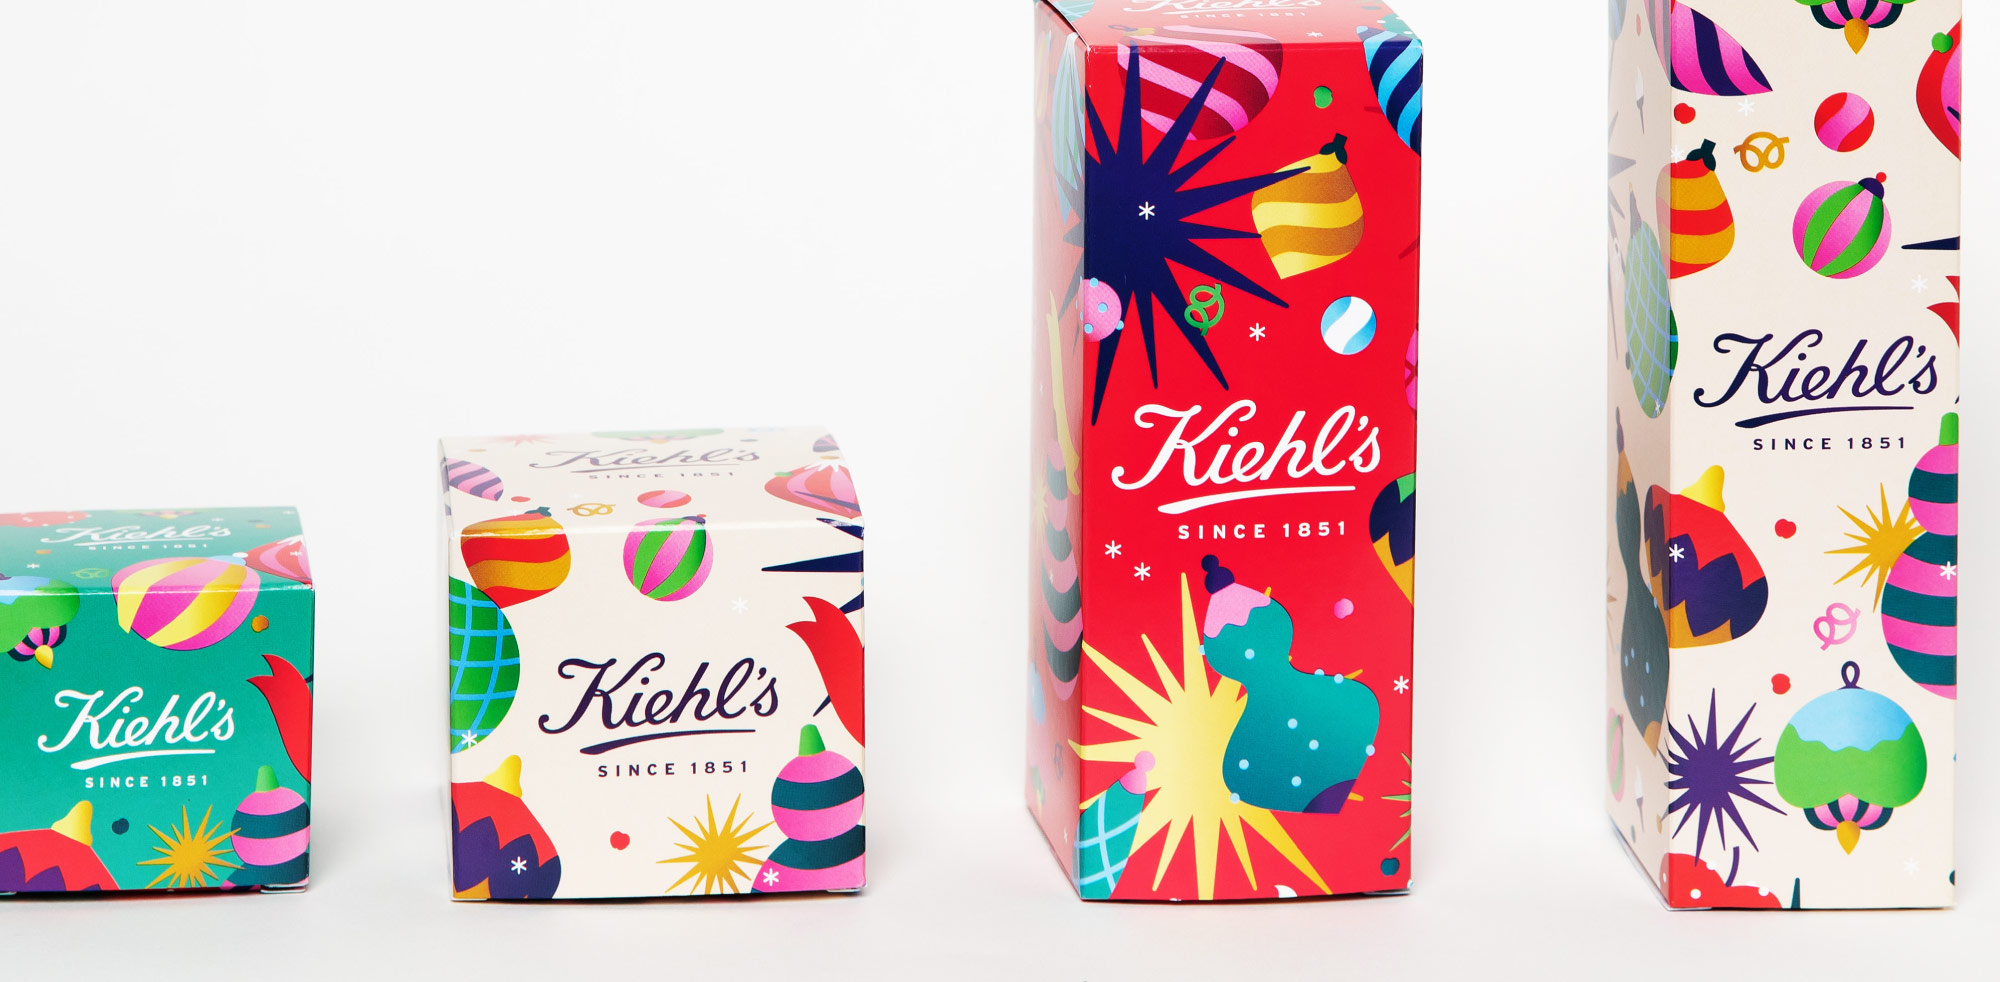 Kiehls Packaging